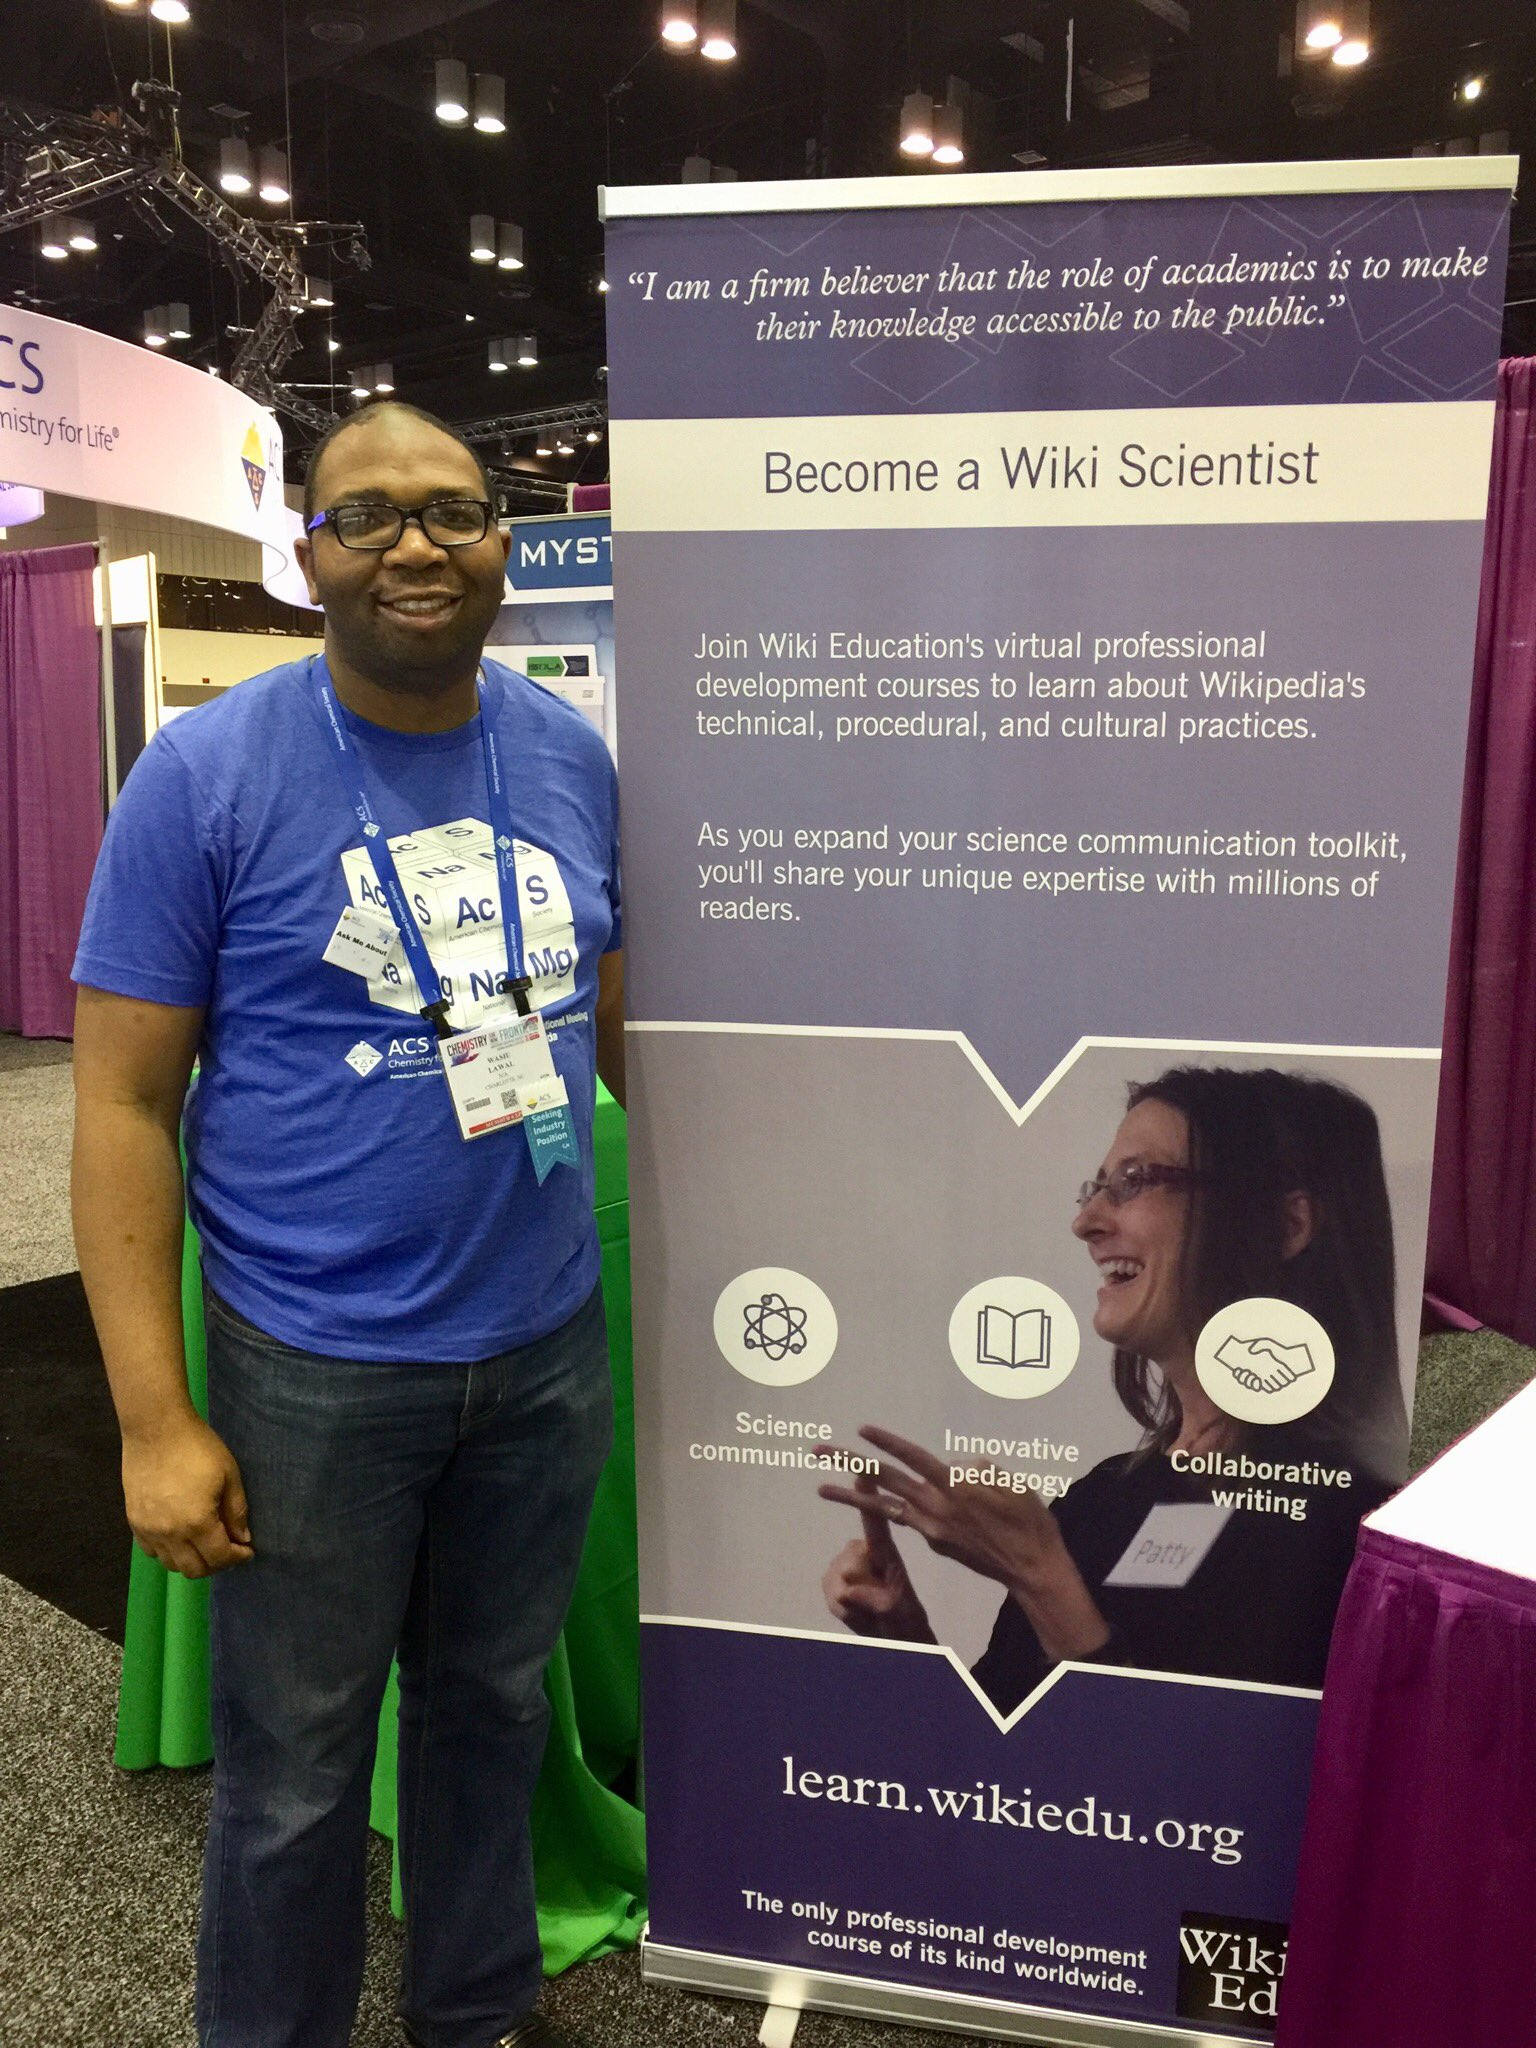 """We need to do a better job of communicating science to the public, because the public's trust in science is decreasing and that affects everyone."" One of our current Wiki Scientists stopped by our booth at #ACS to share why he joined our course. https://t.co/HVDofuFOGj"